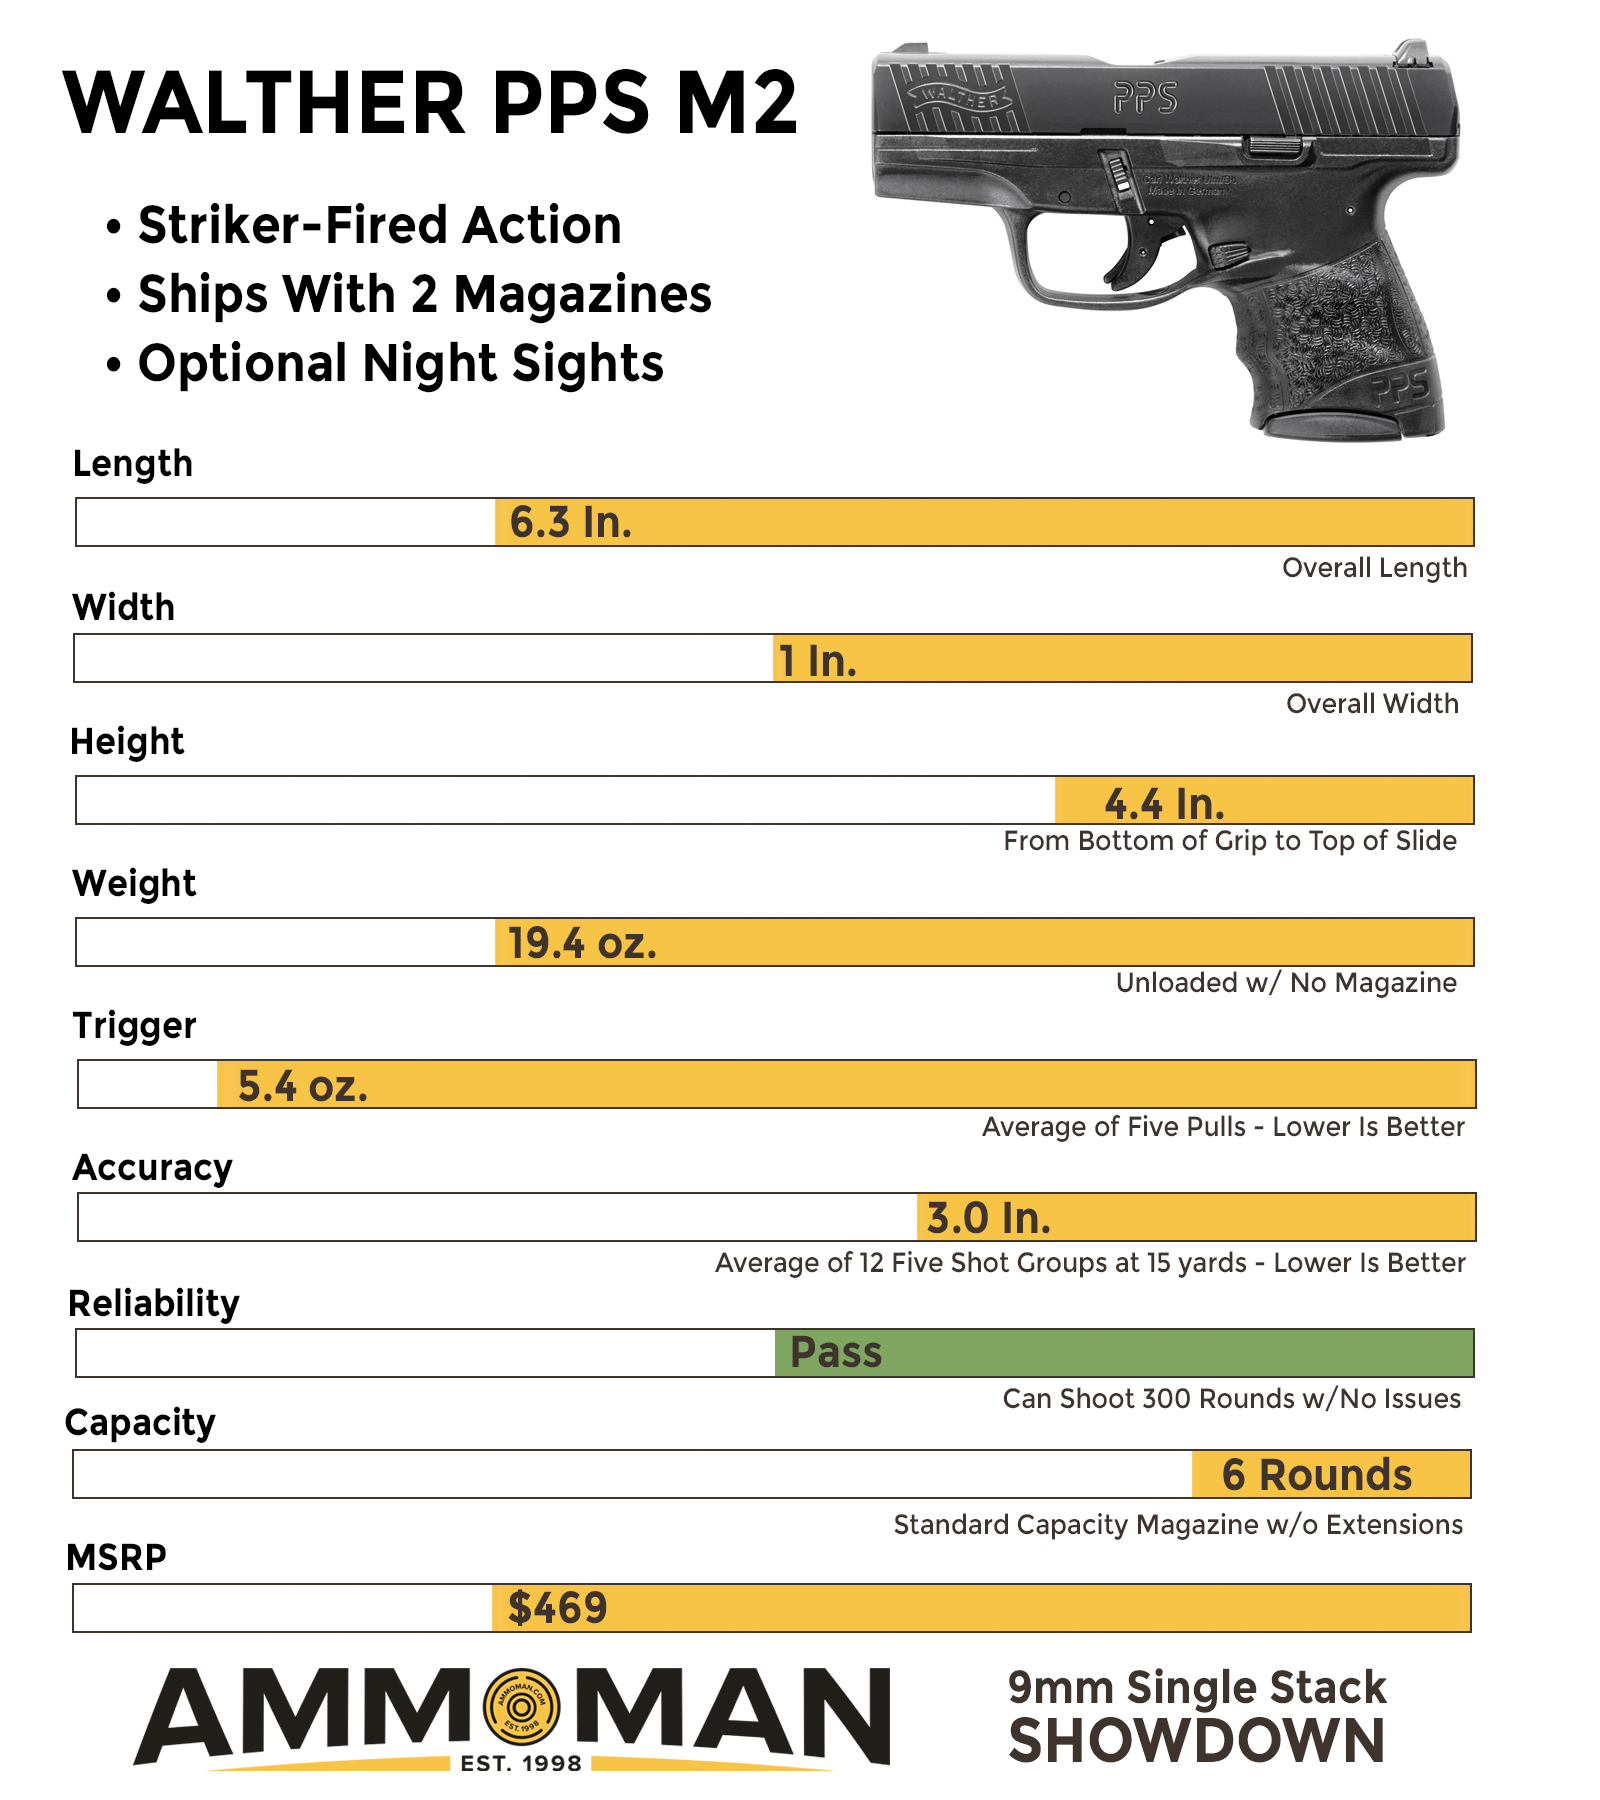 Walther PPS M2 comparison